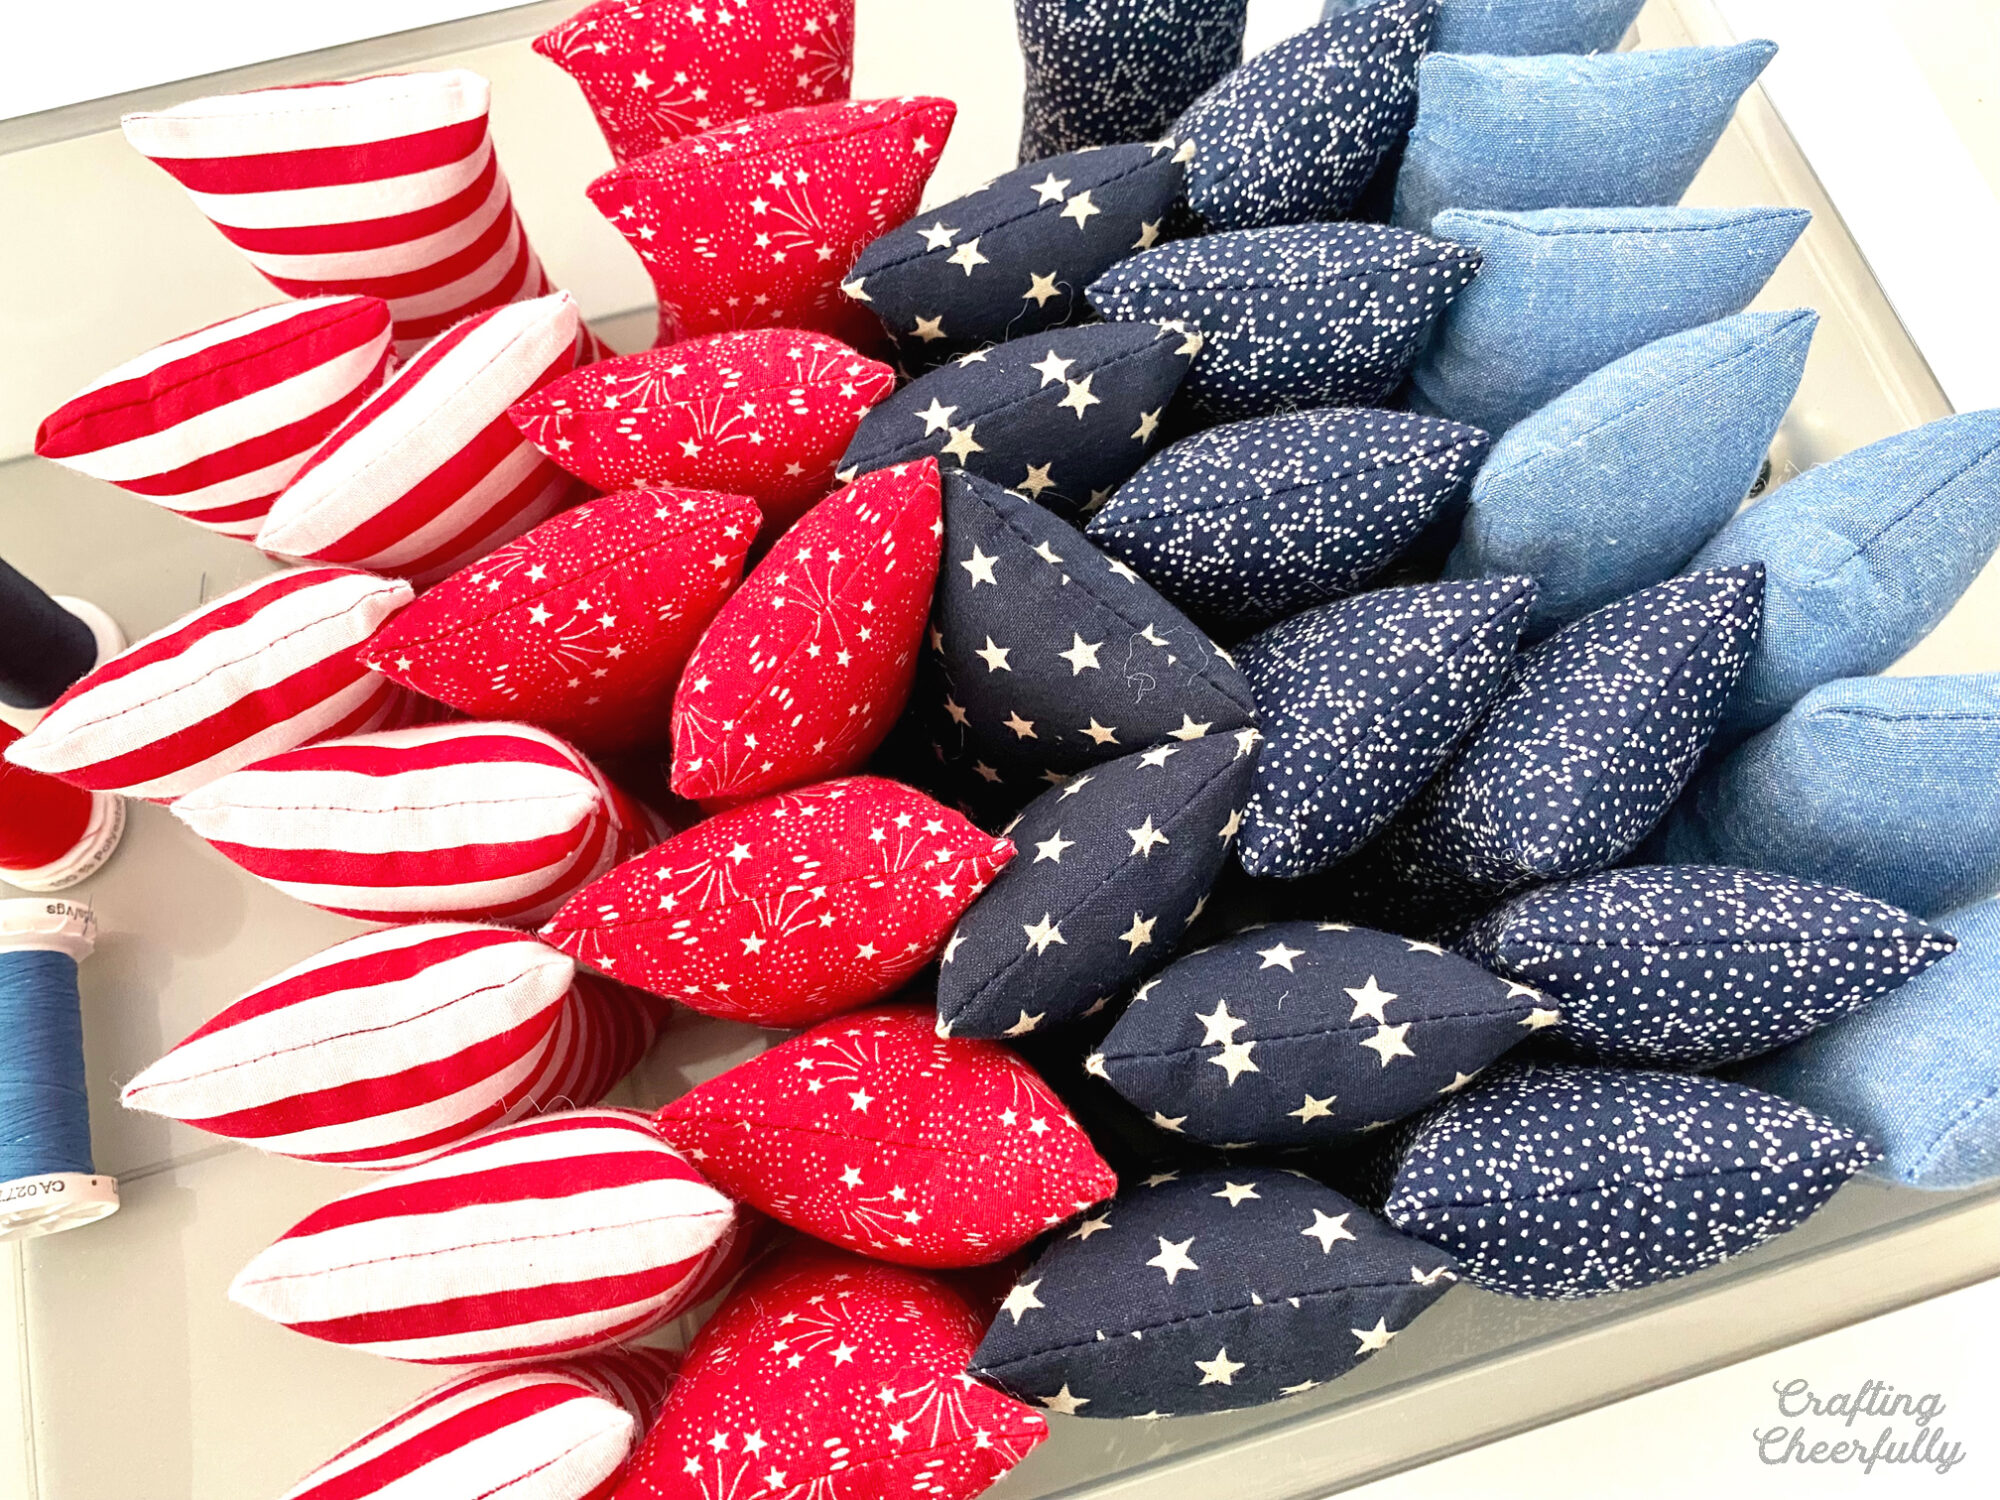 A tray of red, white and blue pillows stuffed and ready to use.